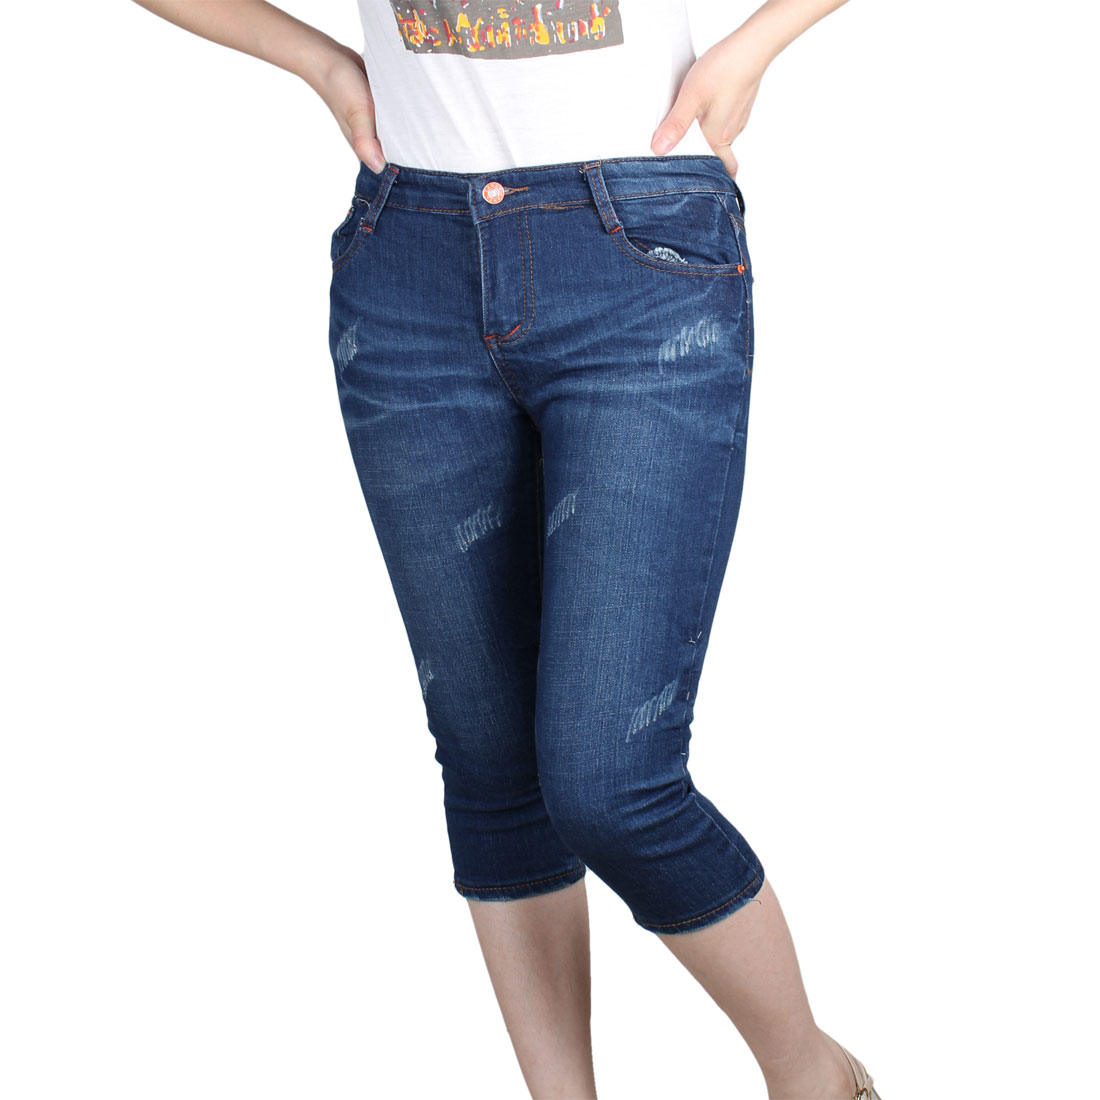 Woman Low Waist Tightfitting Butoon Closure Cropped Jeans Pants Blue XS